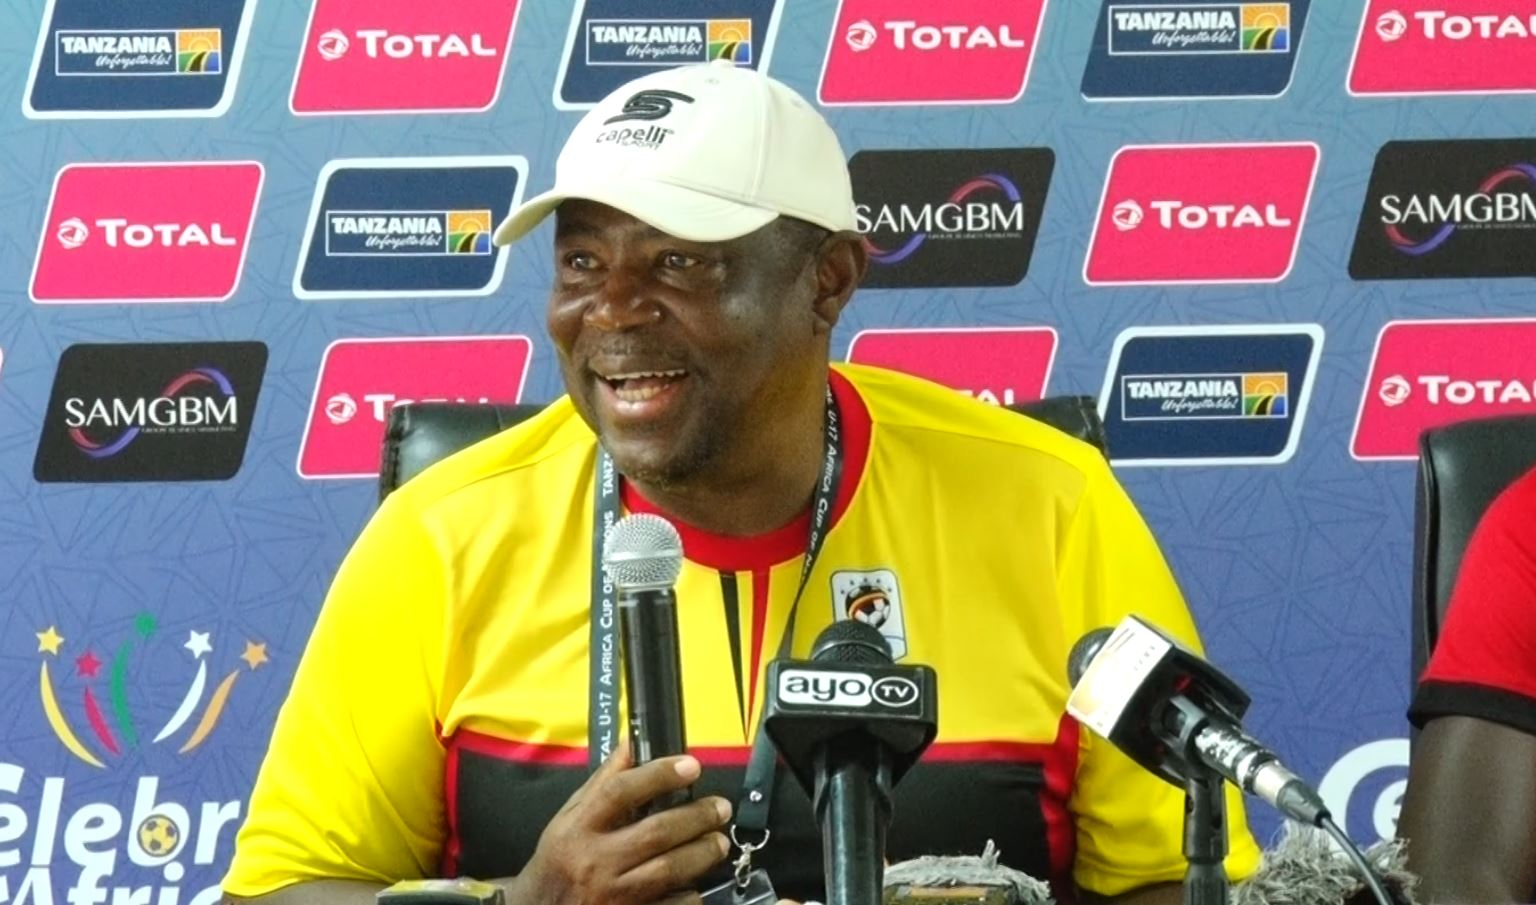 Kwesi is confident the Cubs will reach the semi finals of the AFCON 2019 tournament (file photo)